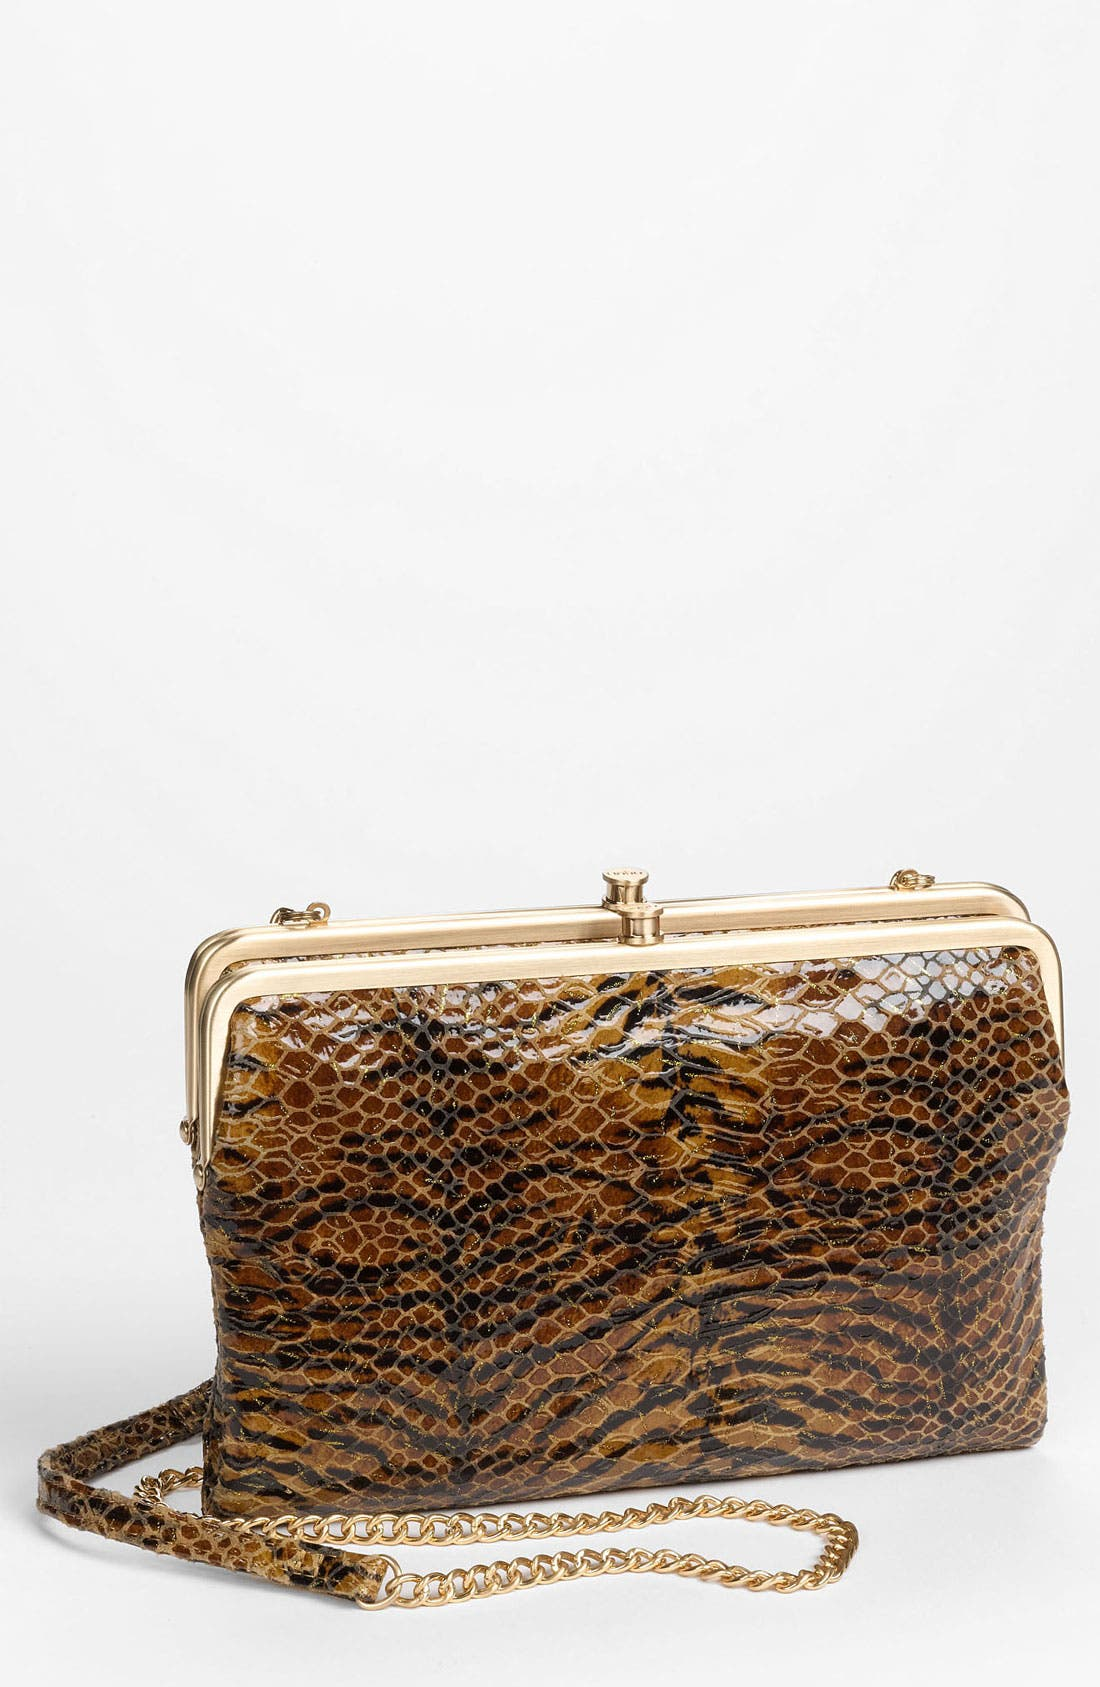 Alternate Image 1 Selected - Hobo 'Vintage Leanne' Leather Crossbody Bag